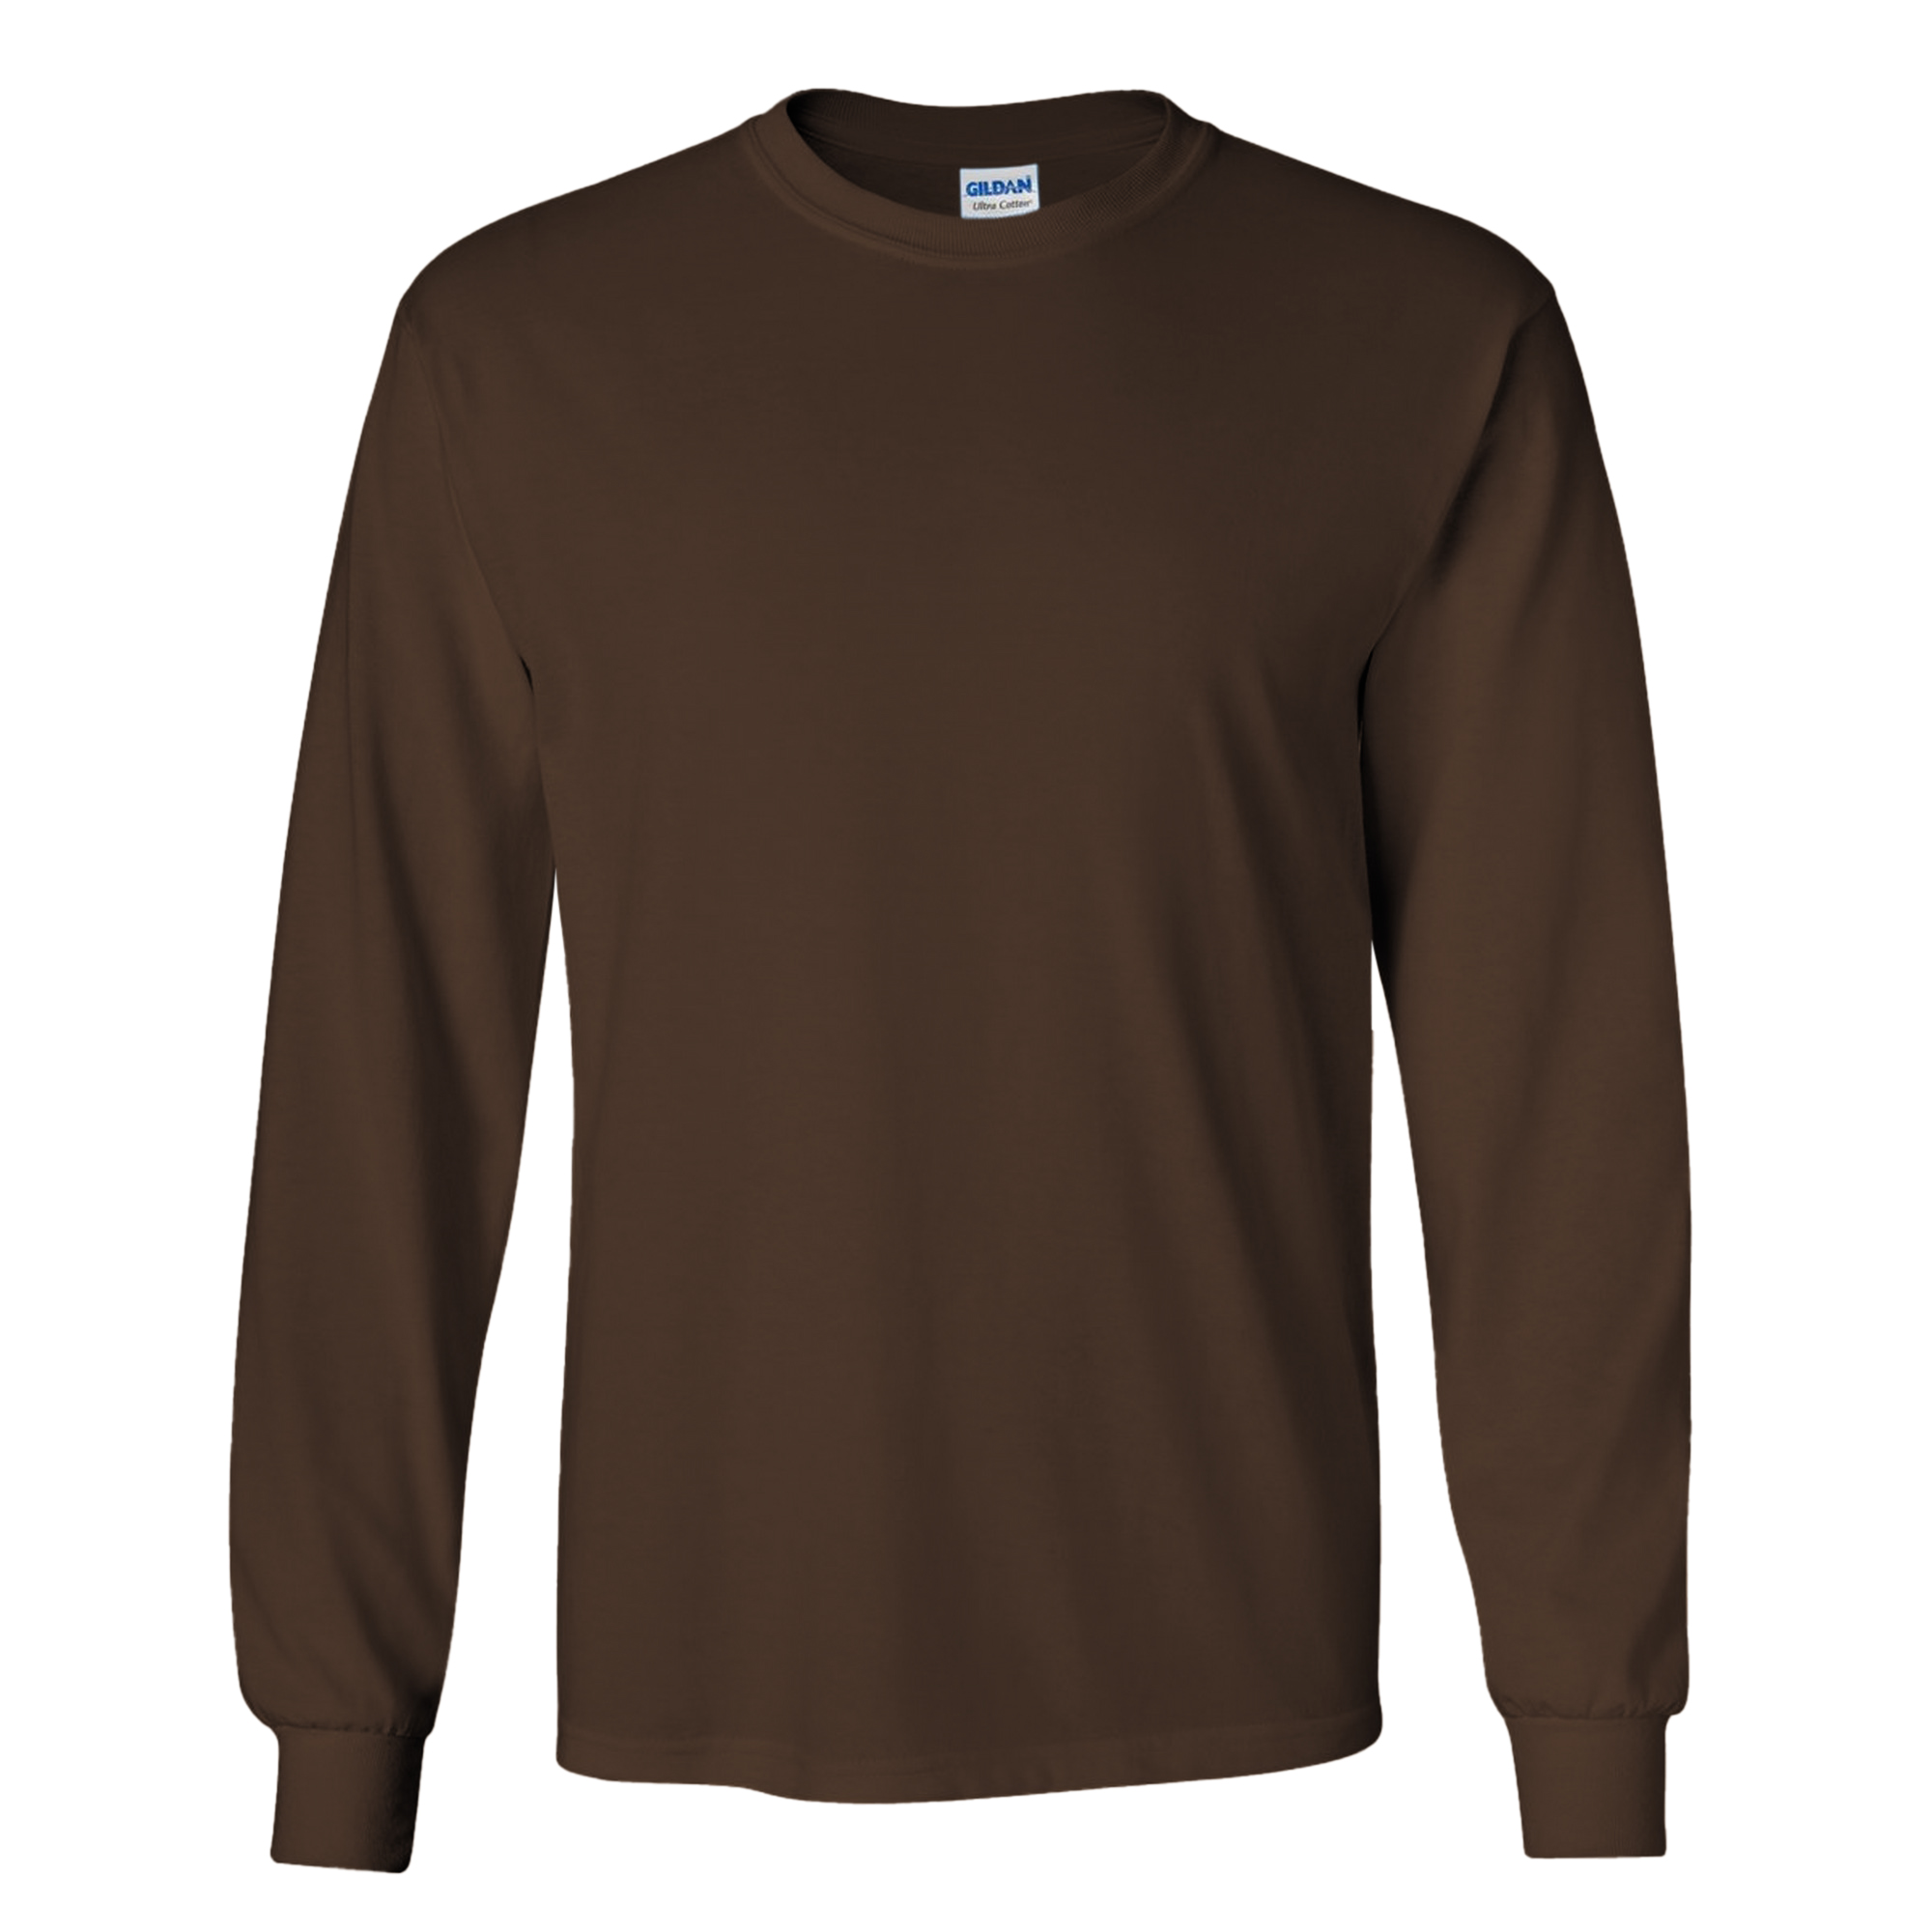 Gildan Mens Plain Crew Neck Ultra Cotton Long Sleeve T: mens long sleeve white t shirt